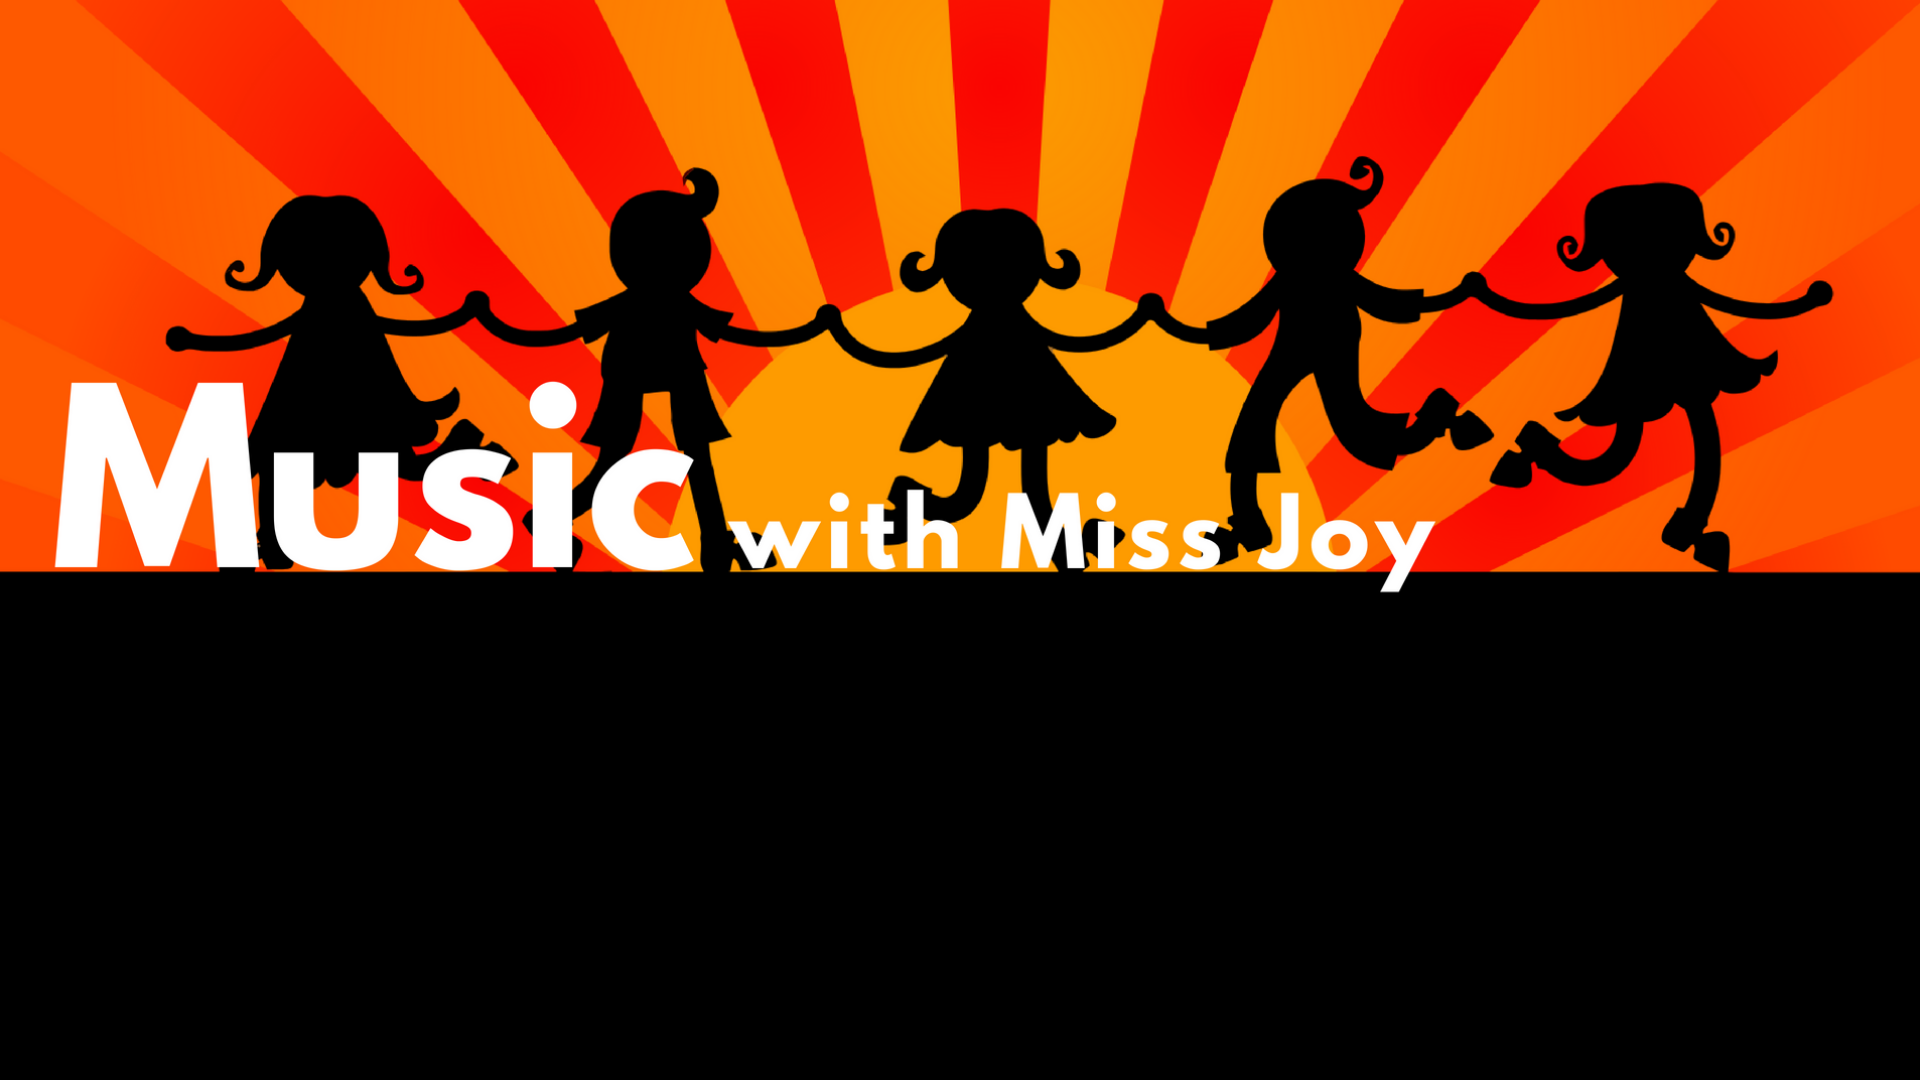 Music with Miss Joy